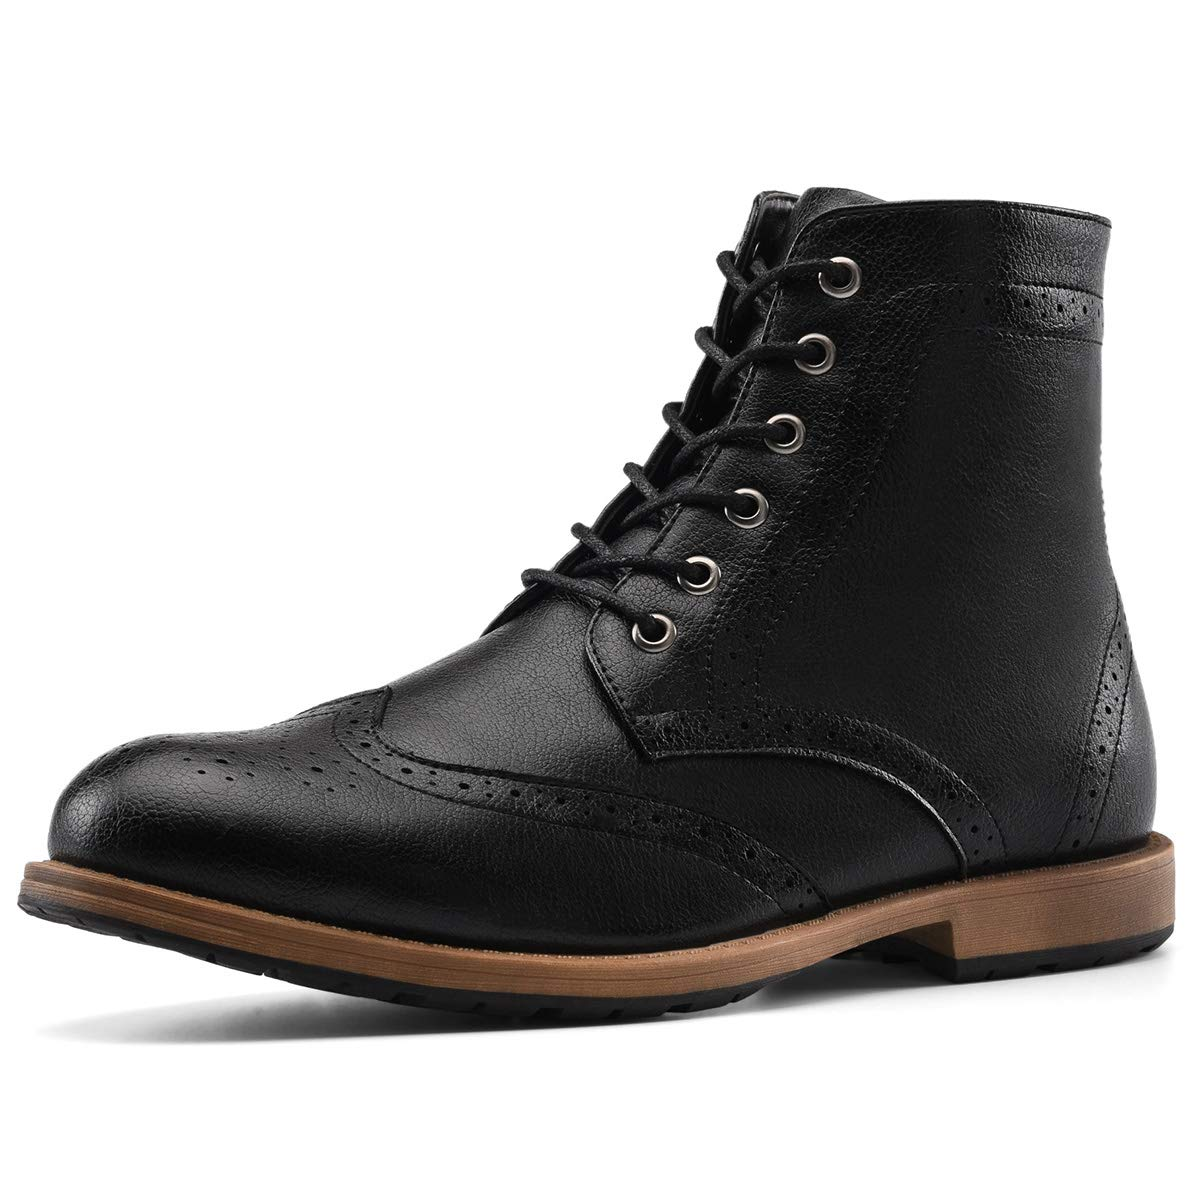 Men's Oxford Boots Wingtip Dress Boots Brogue Lace-Up Zip for Work Hike Motorcycle Black 10.5 by GM KENNARD